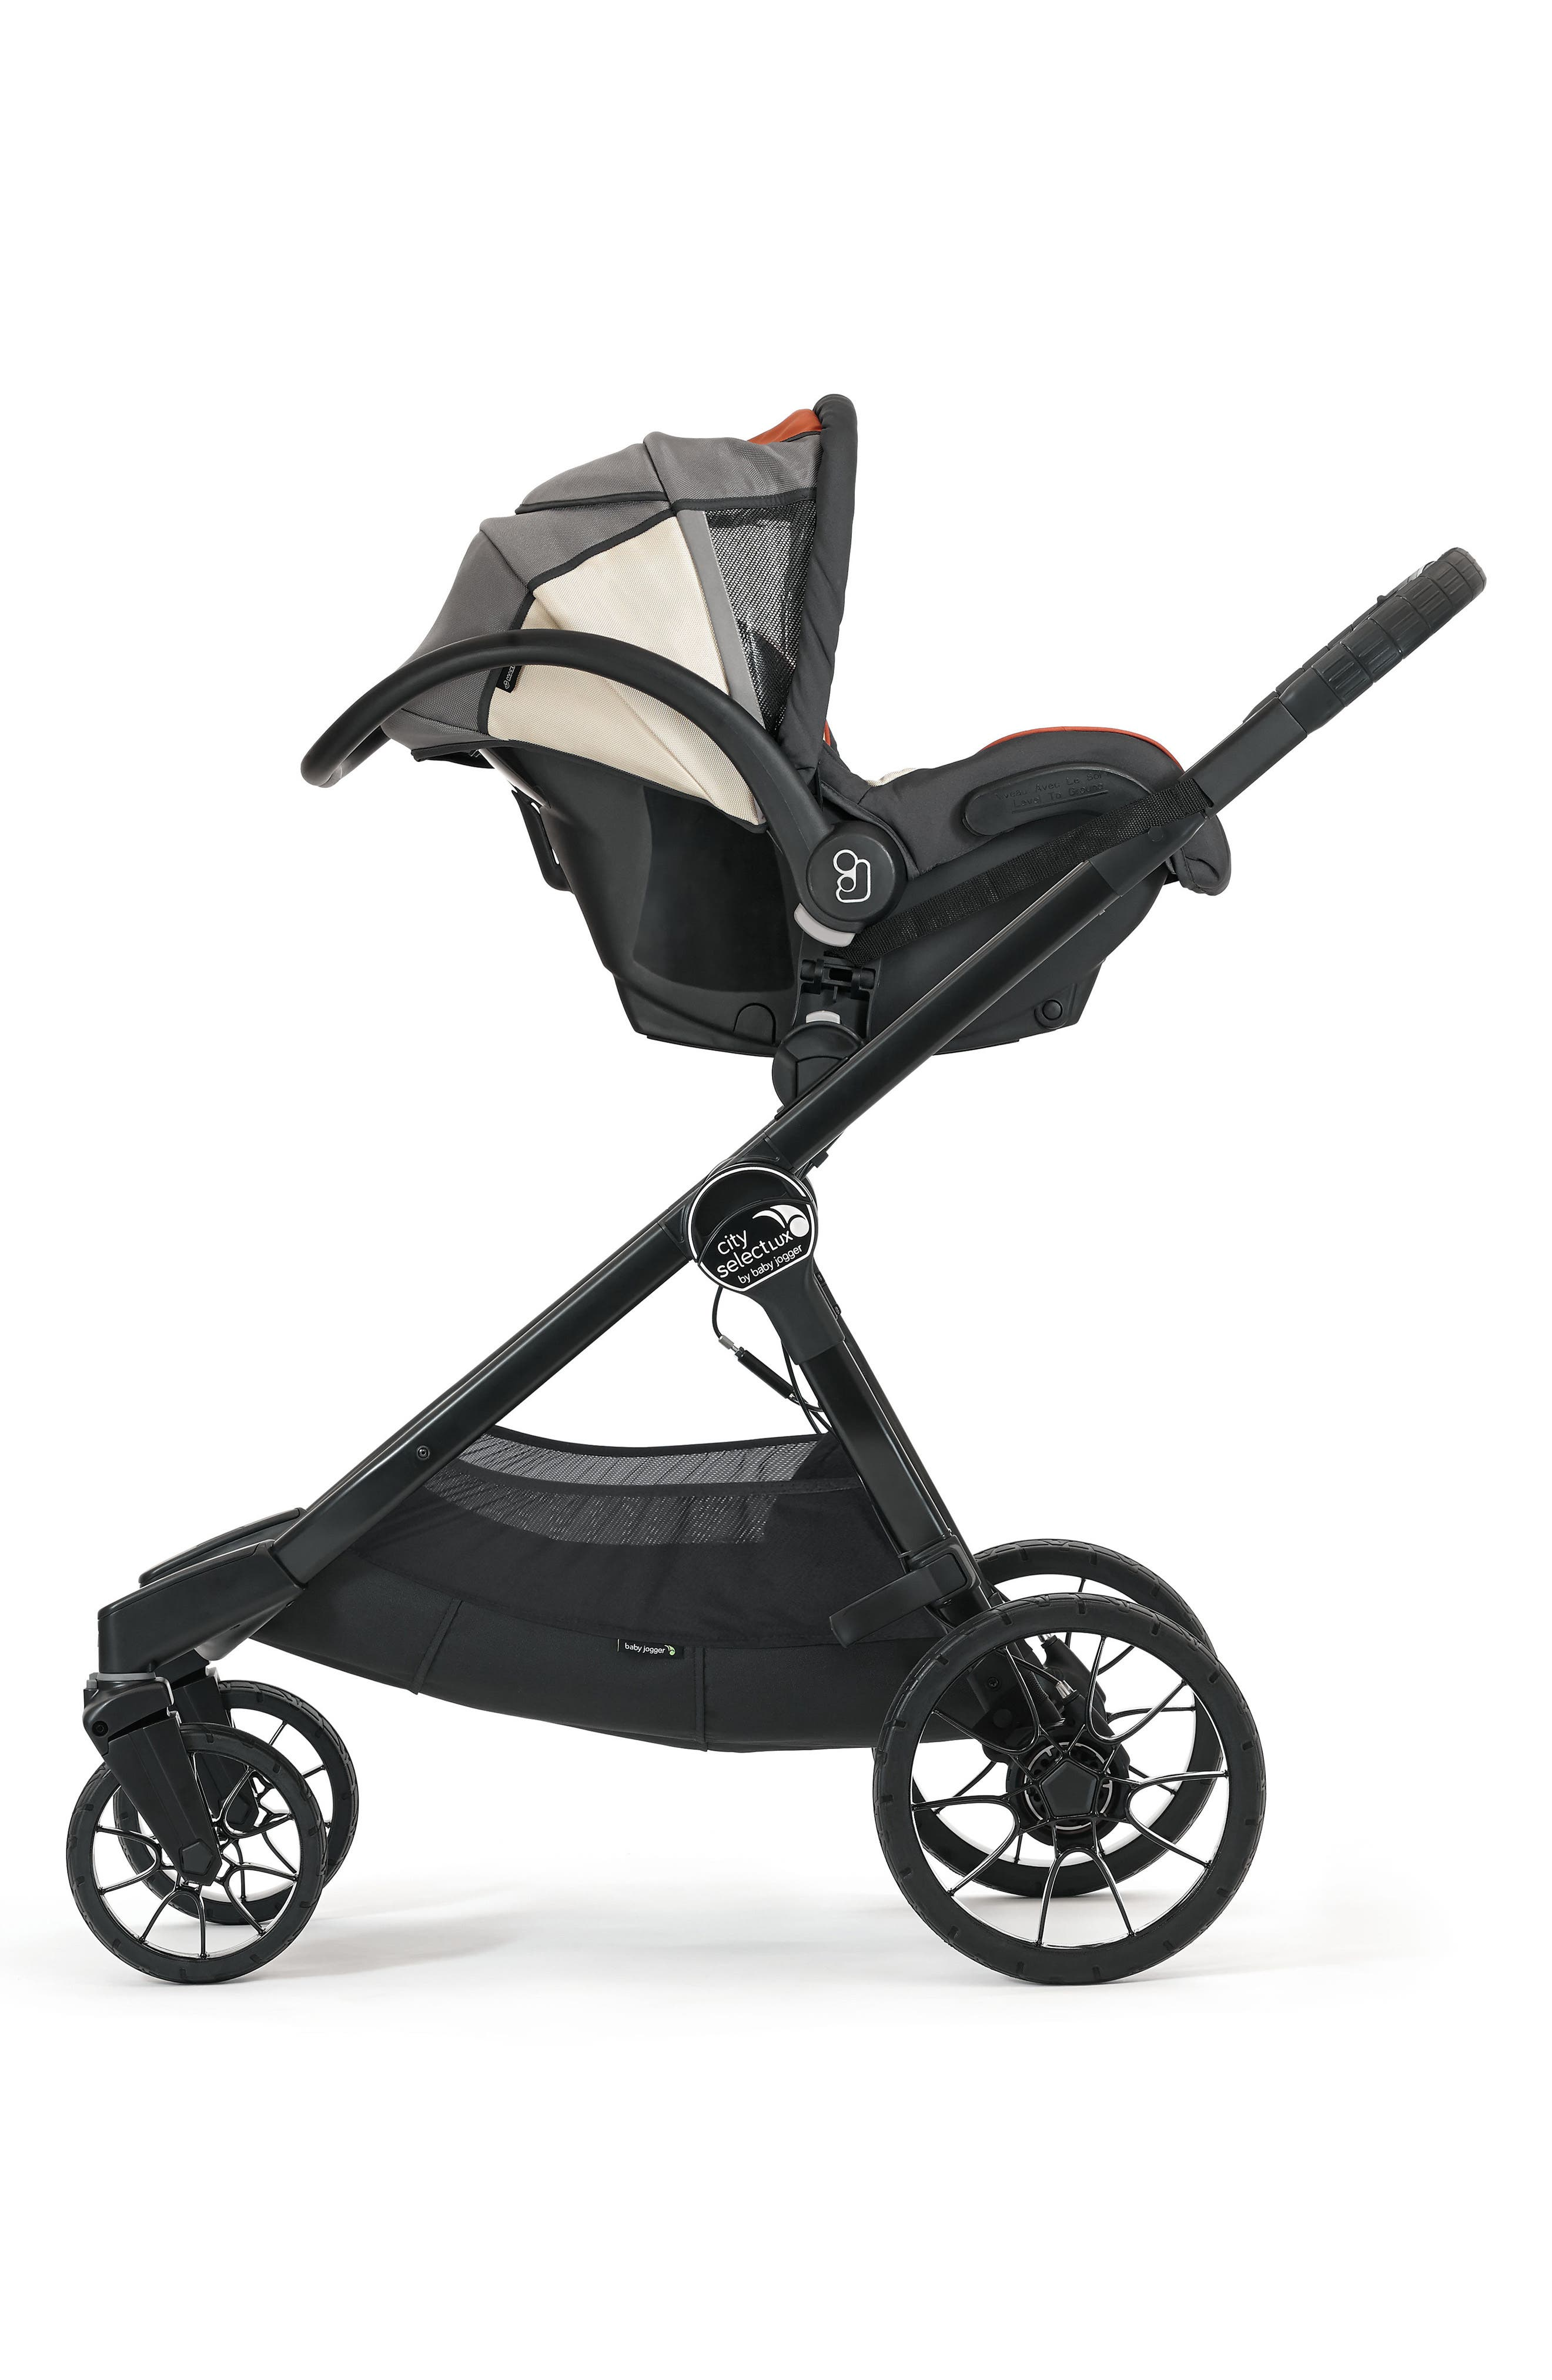 Main Image - Baby Jogger City Select®/City Premier® Stroller to Cybex & Maxi-Cosi® Car Seat Adapter